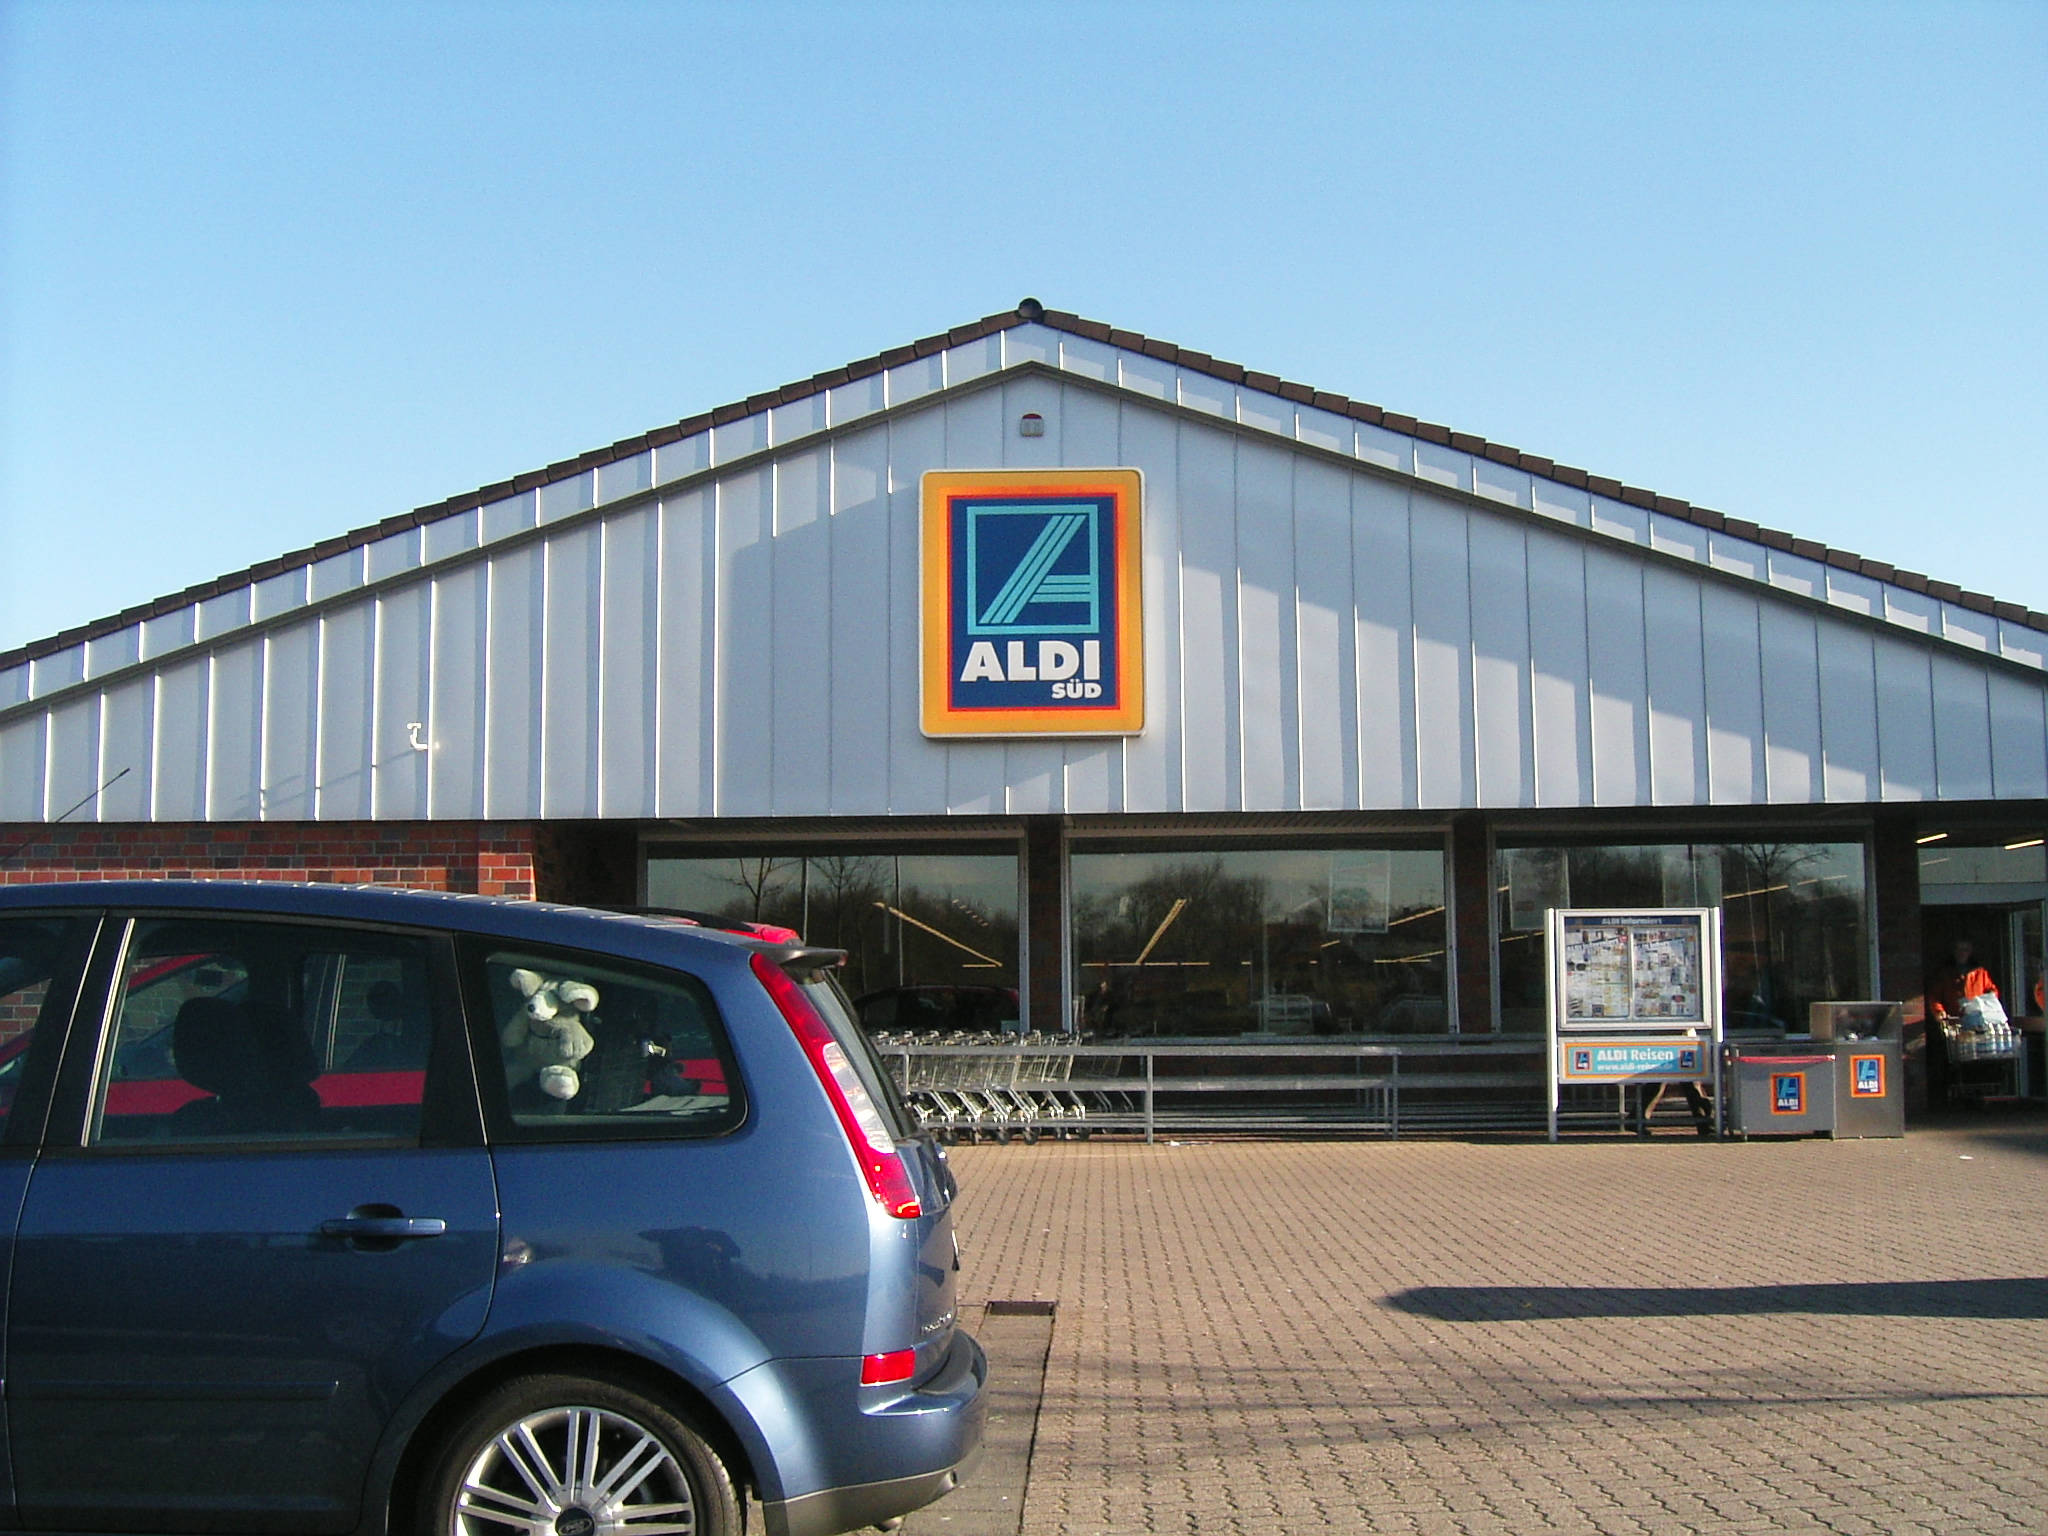 Discounter in Germany, Aldi